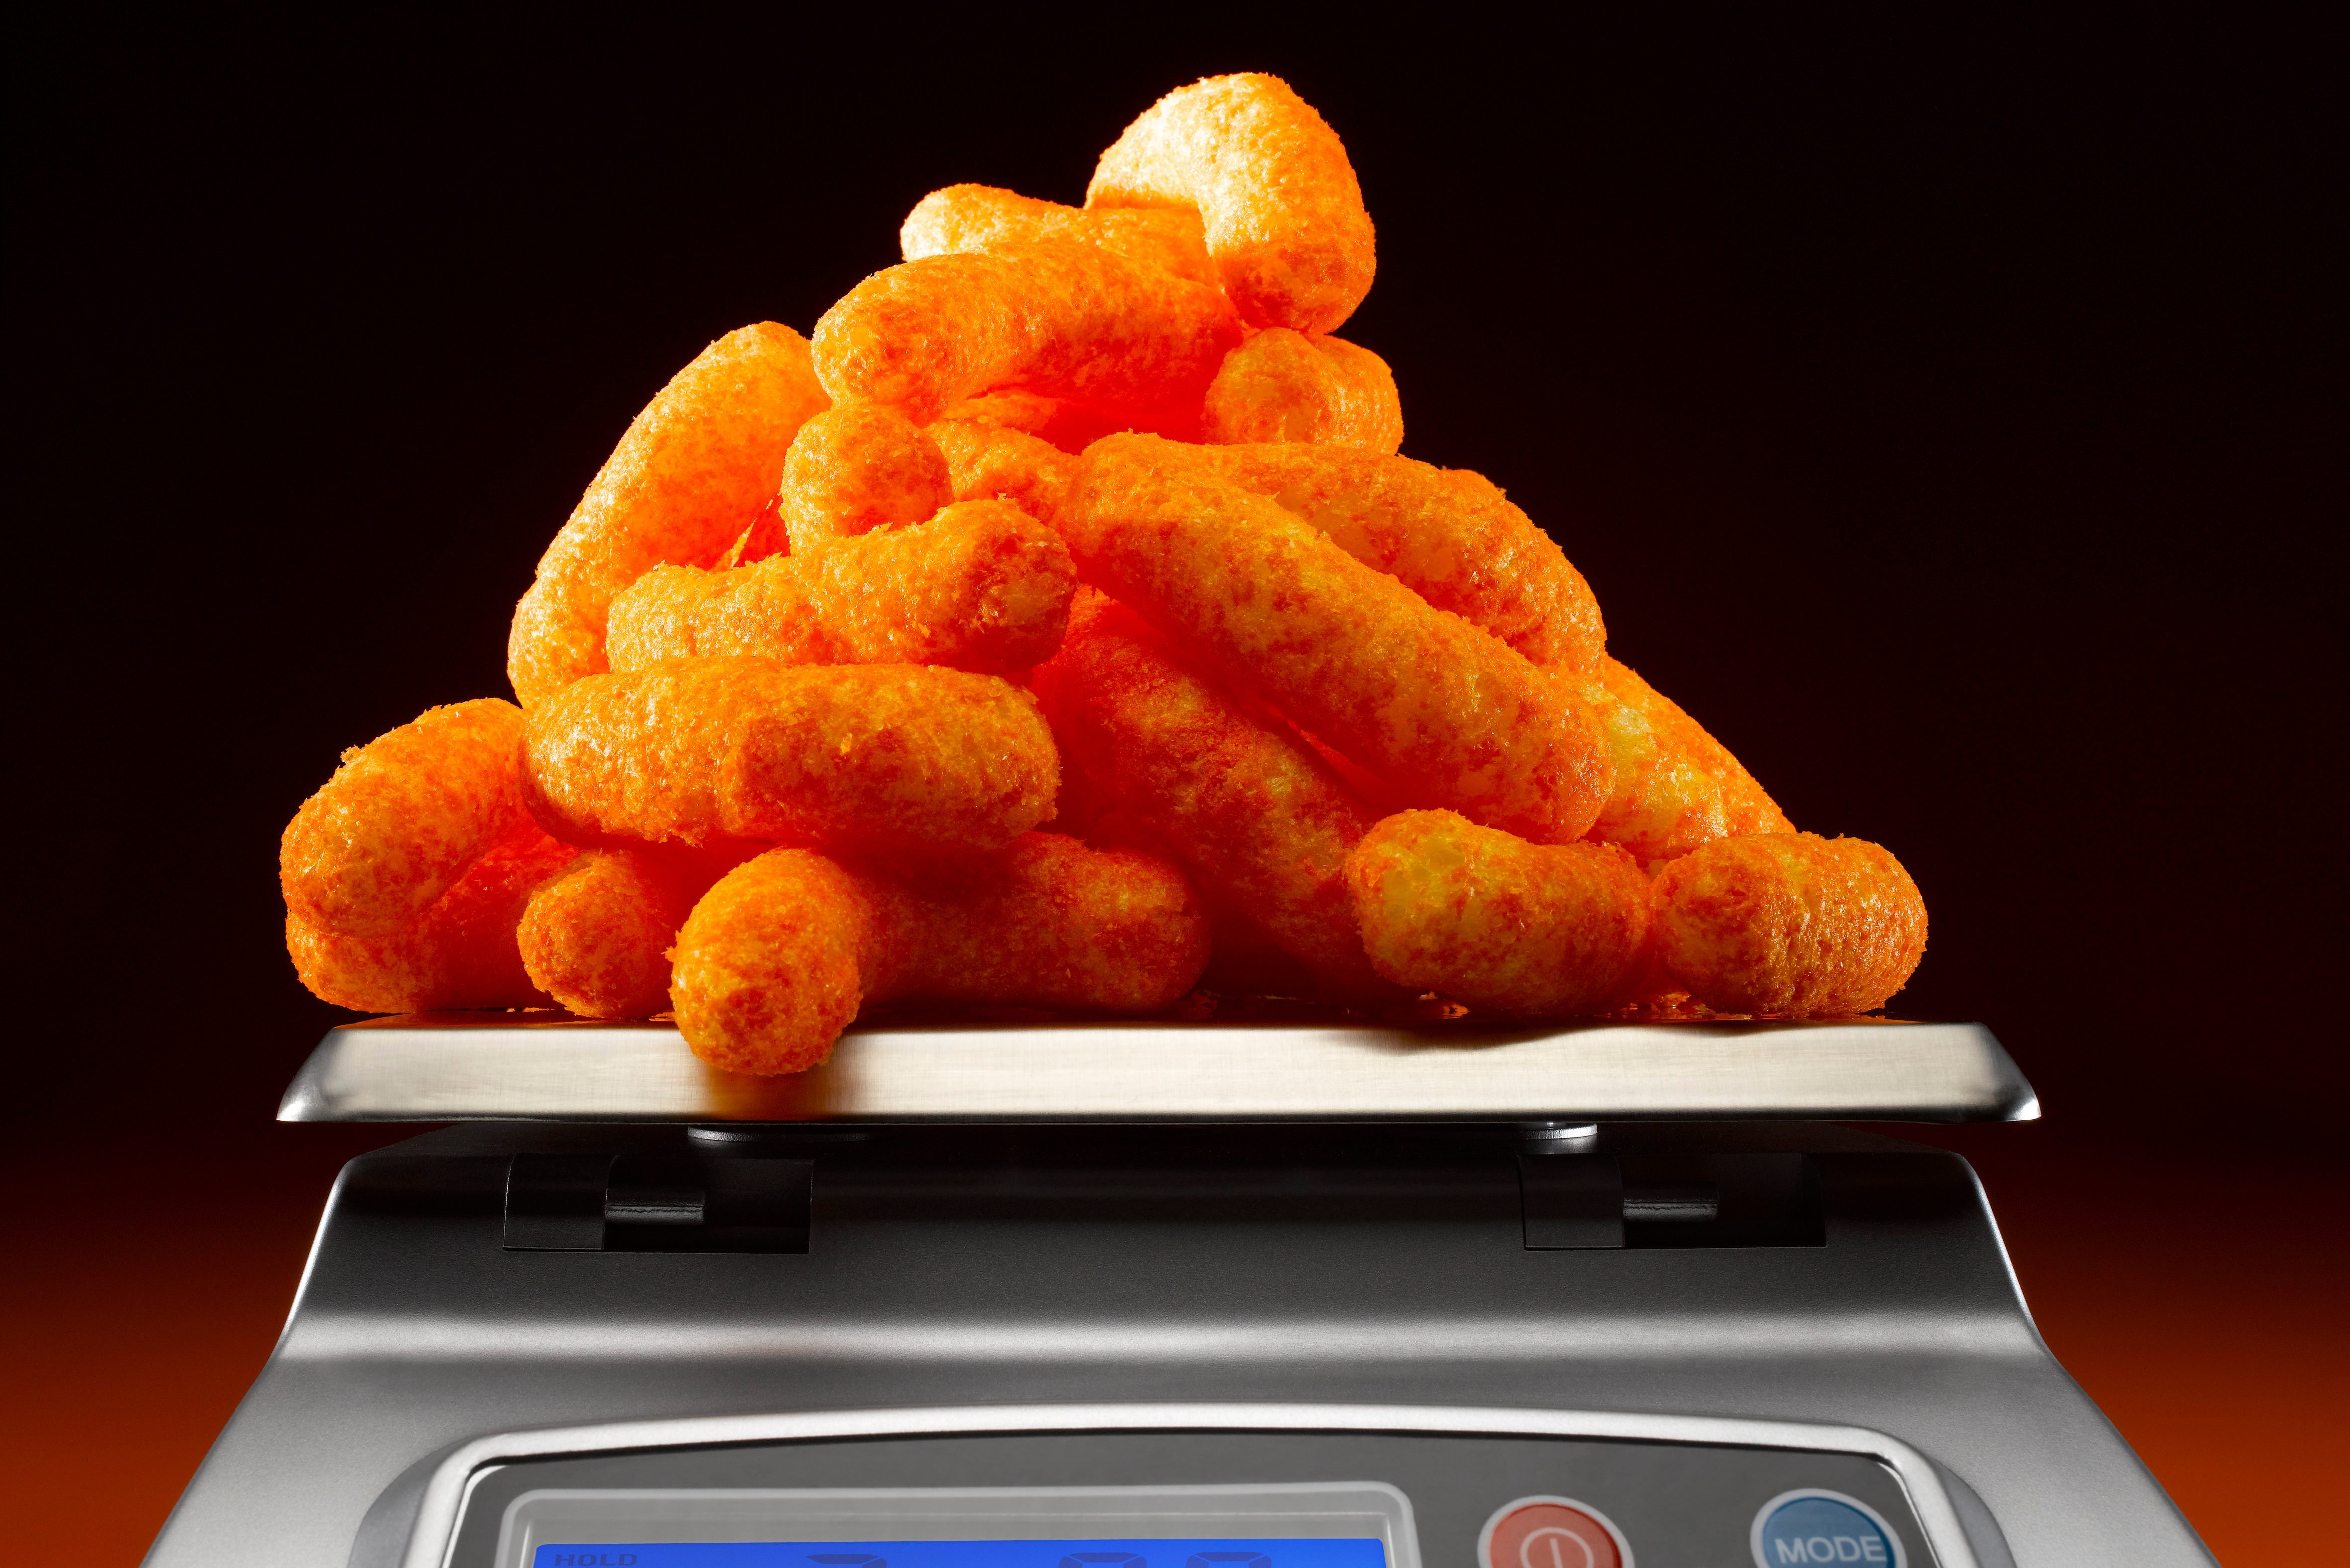 Cheese Curls on Scale